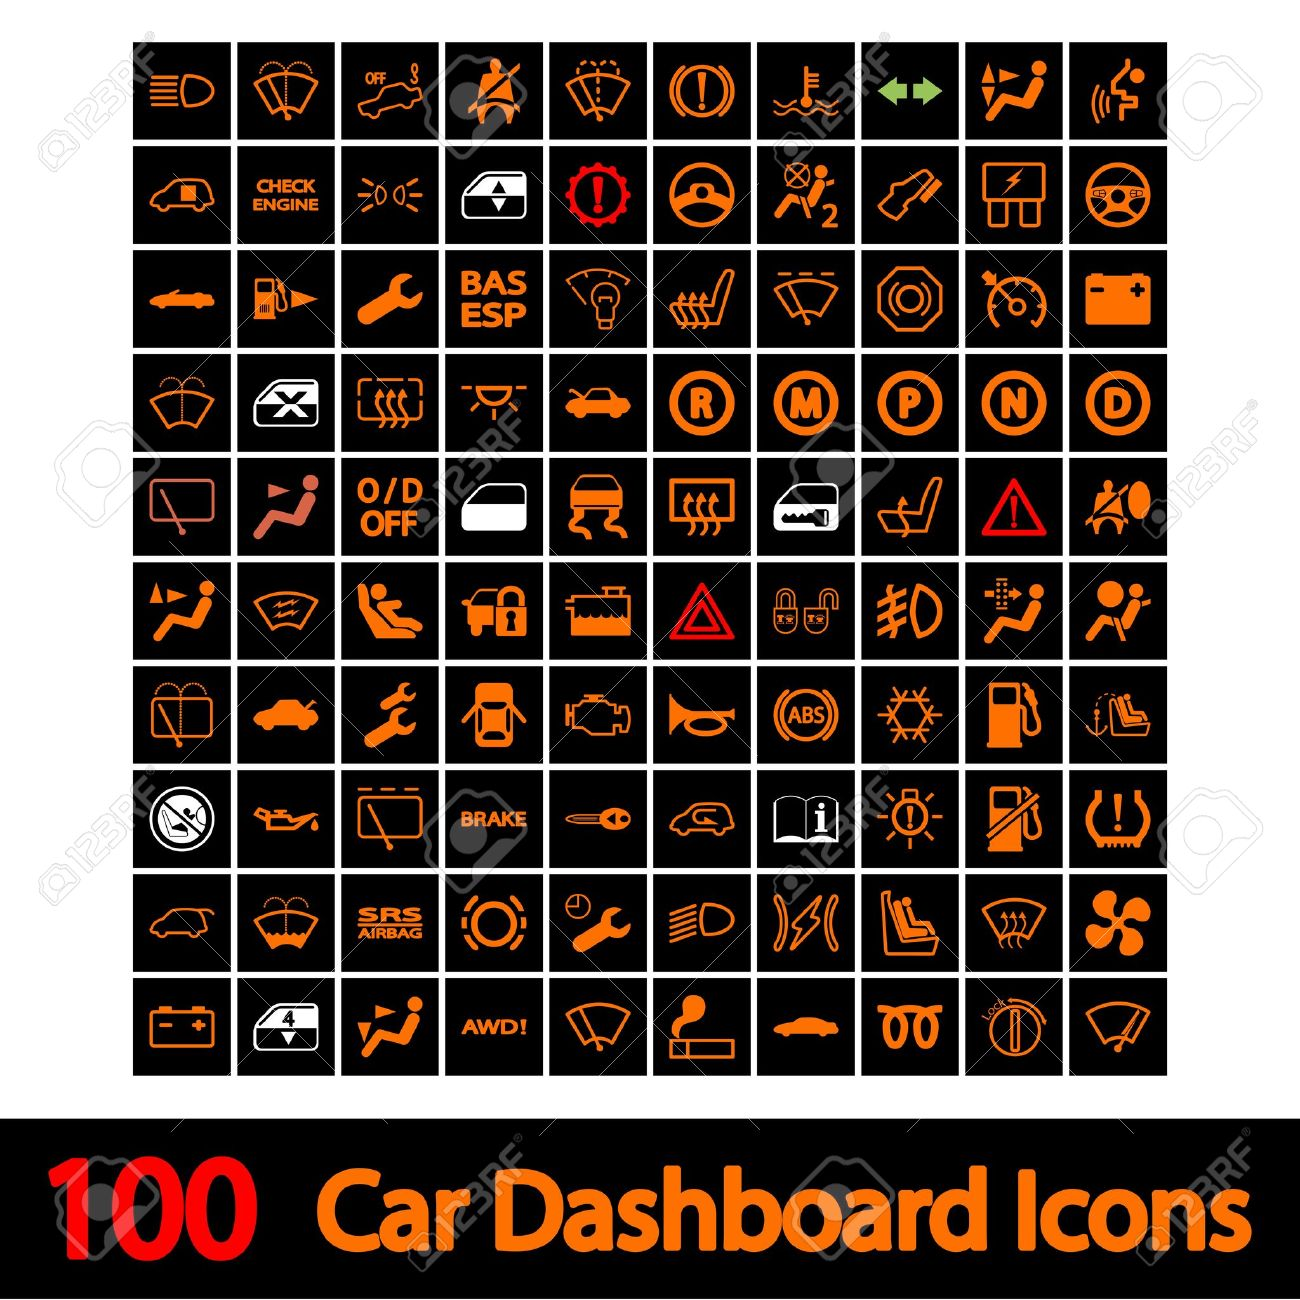 Car Dashboard Icons Vector Illustration Royalty Free Cliparts - Car image sign of dashboardcar dashboard icons stock images royaltyfree imagesvectors